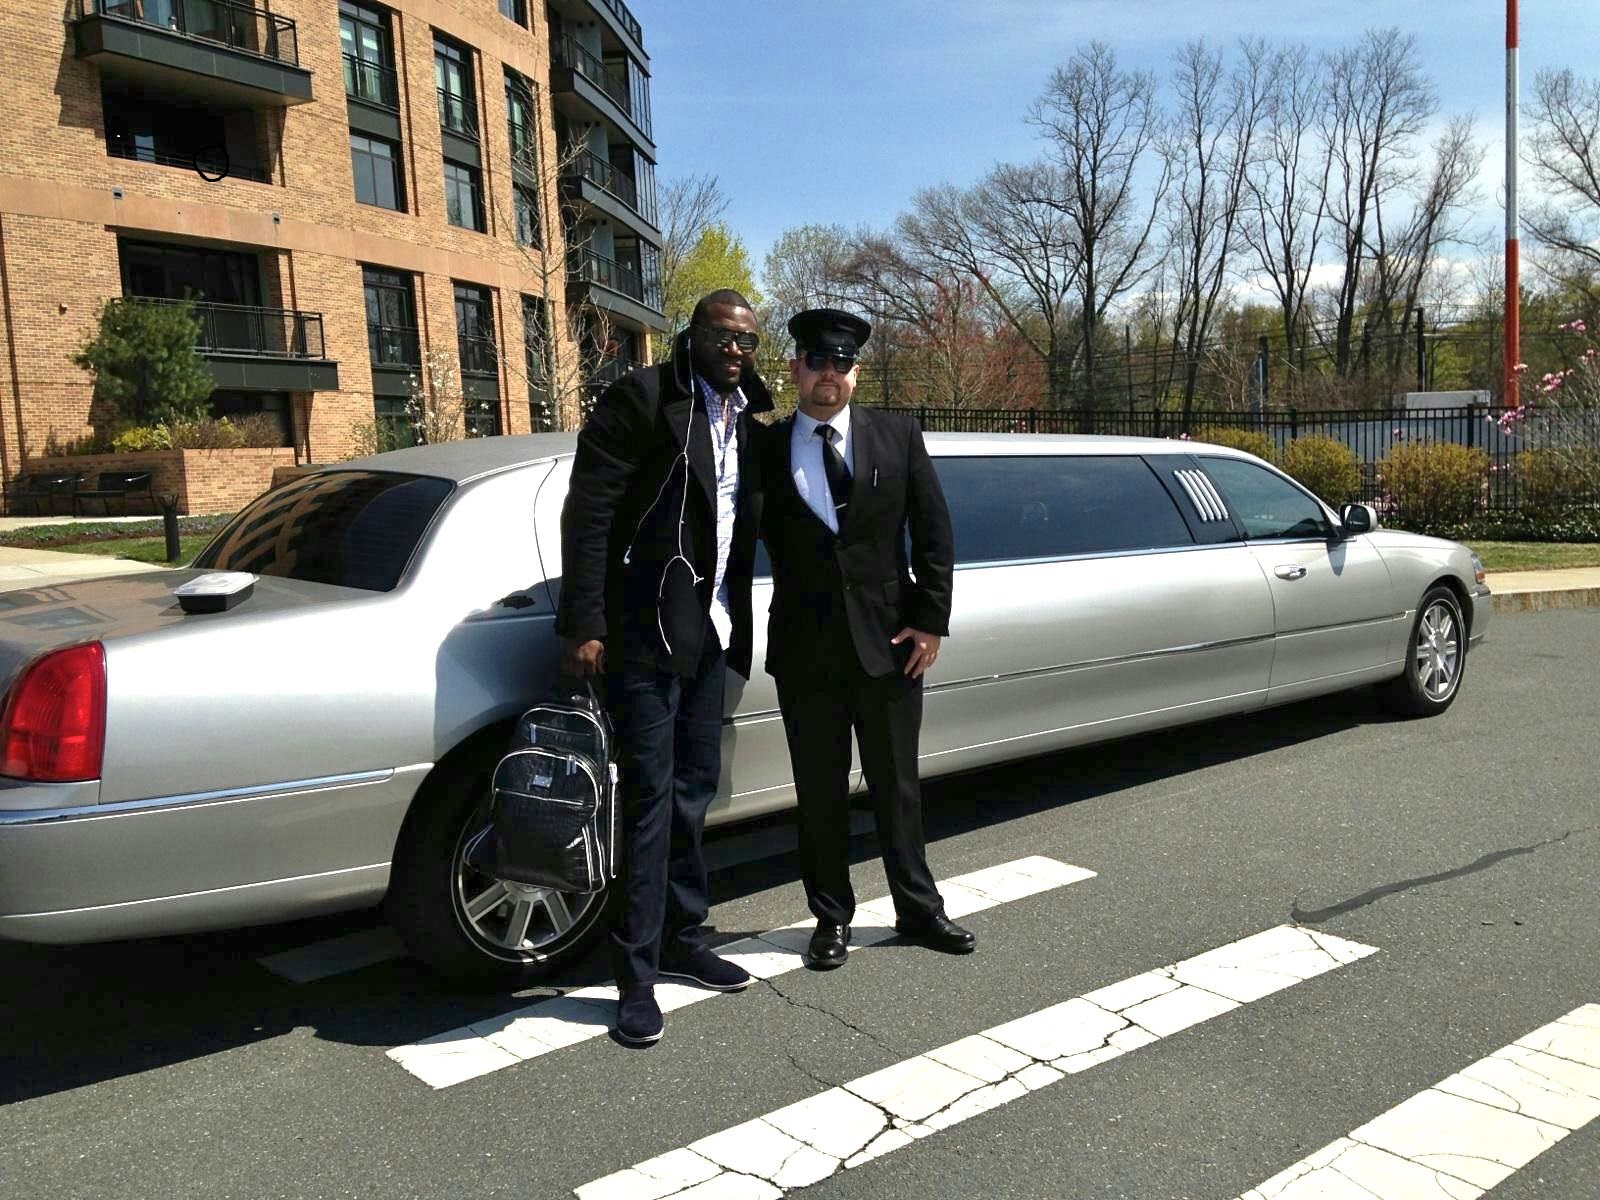 Limos for Rent Greenville NH 03048